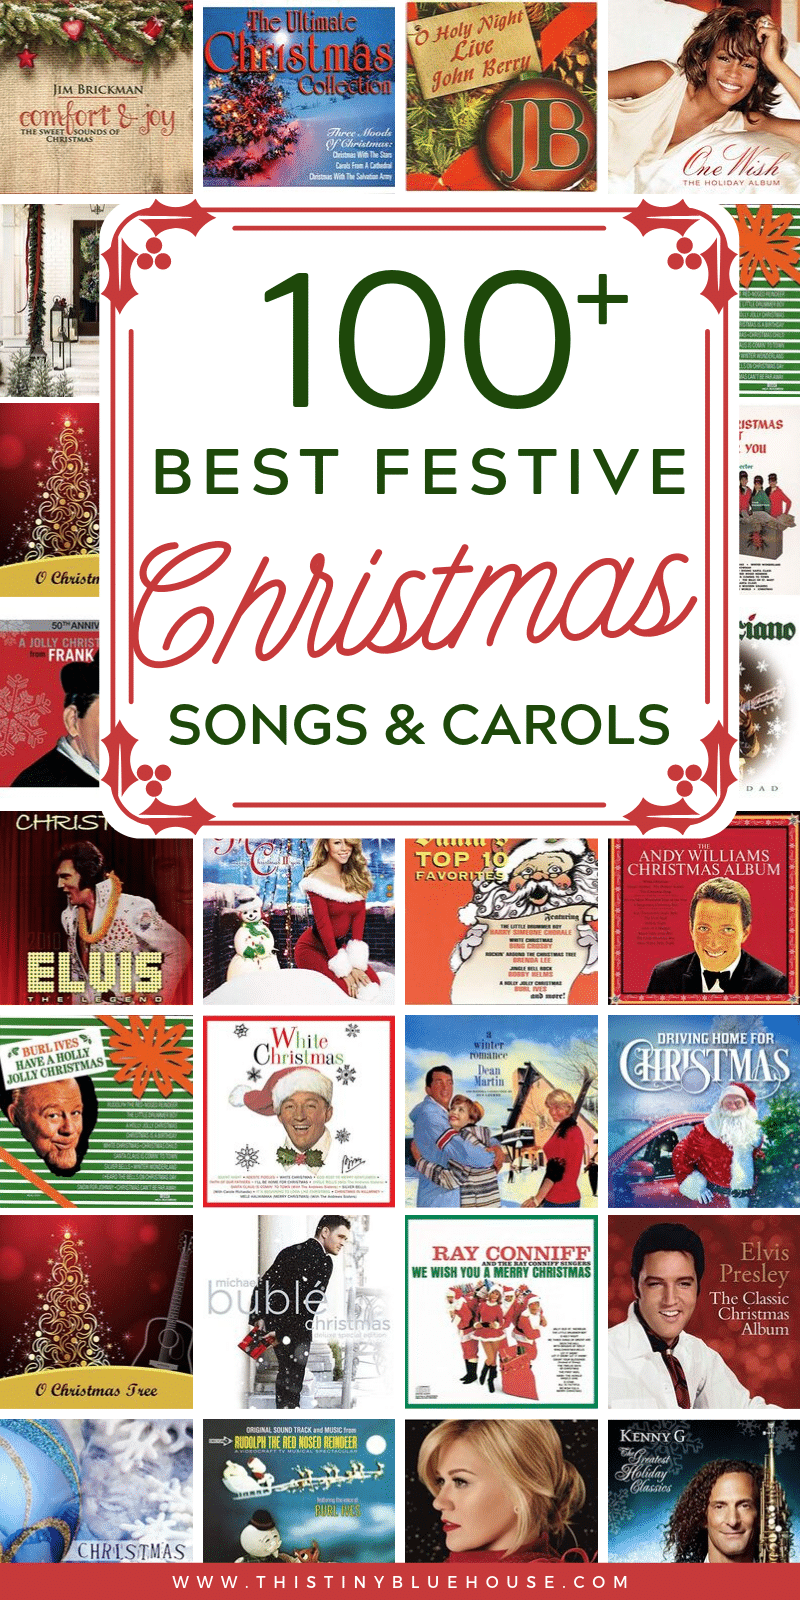 Get into the holiday spirit with these BEST festive Christmas songs & carols. From classic to contemporary this is the best Christmas song collection! #christmasmusic #bestchristmasmusic #christmassongs #bestchristmassongs #bestchristmasmusicforkids #classicchristmassongs #classicchristmascarols